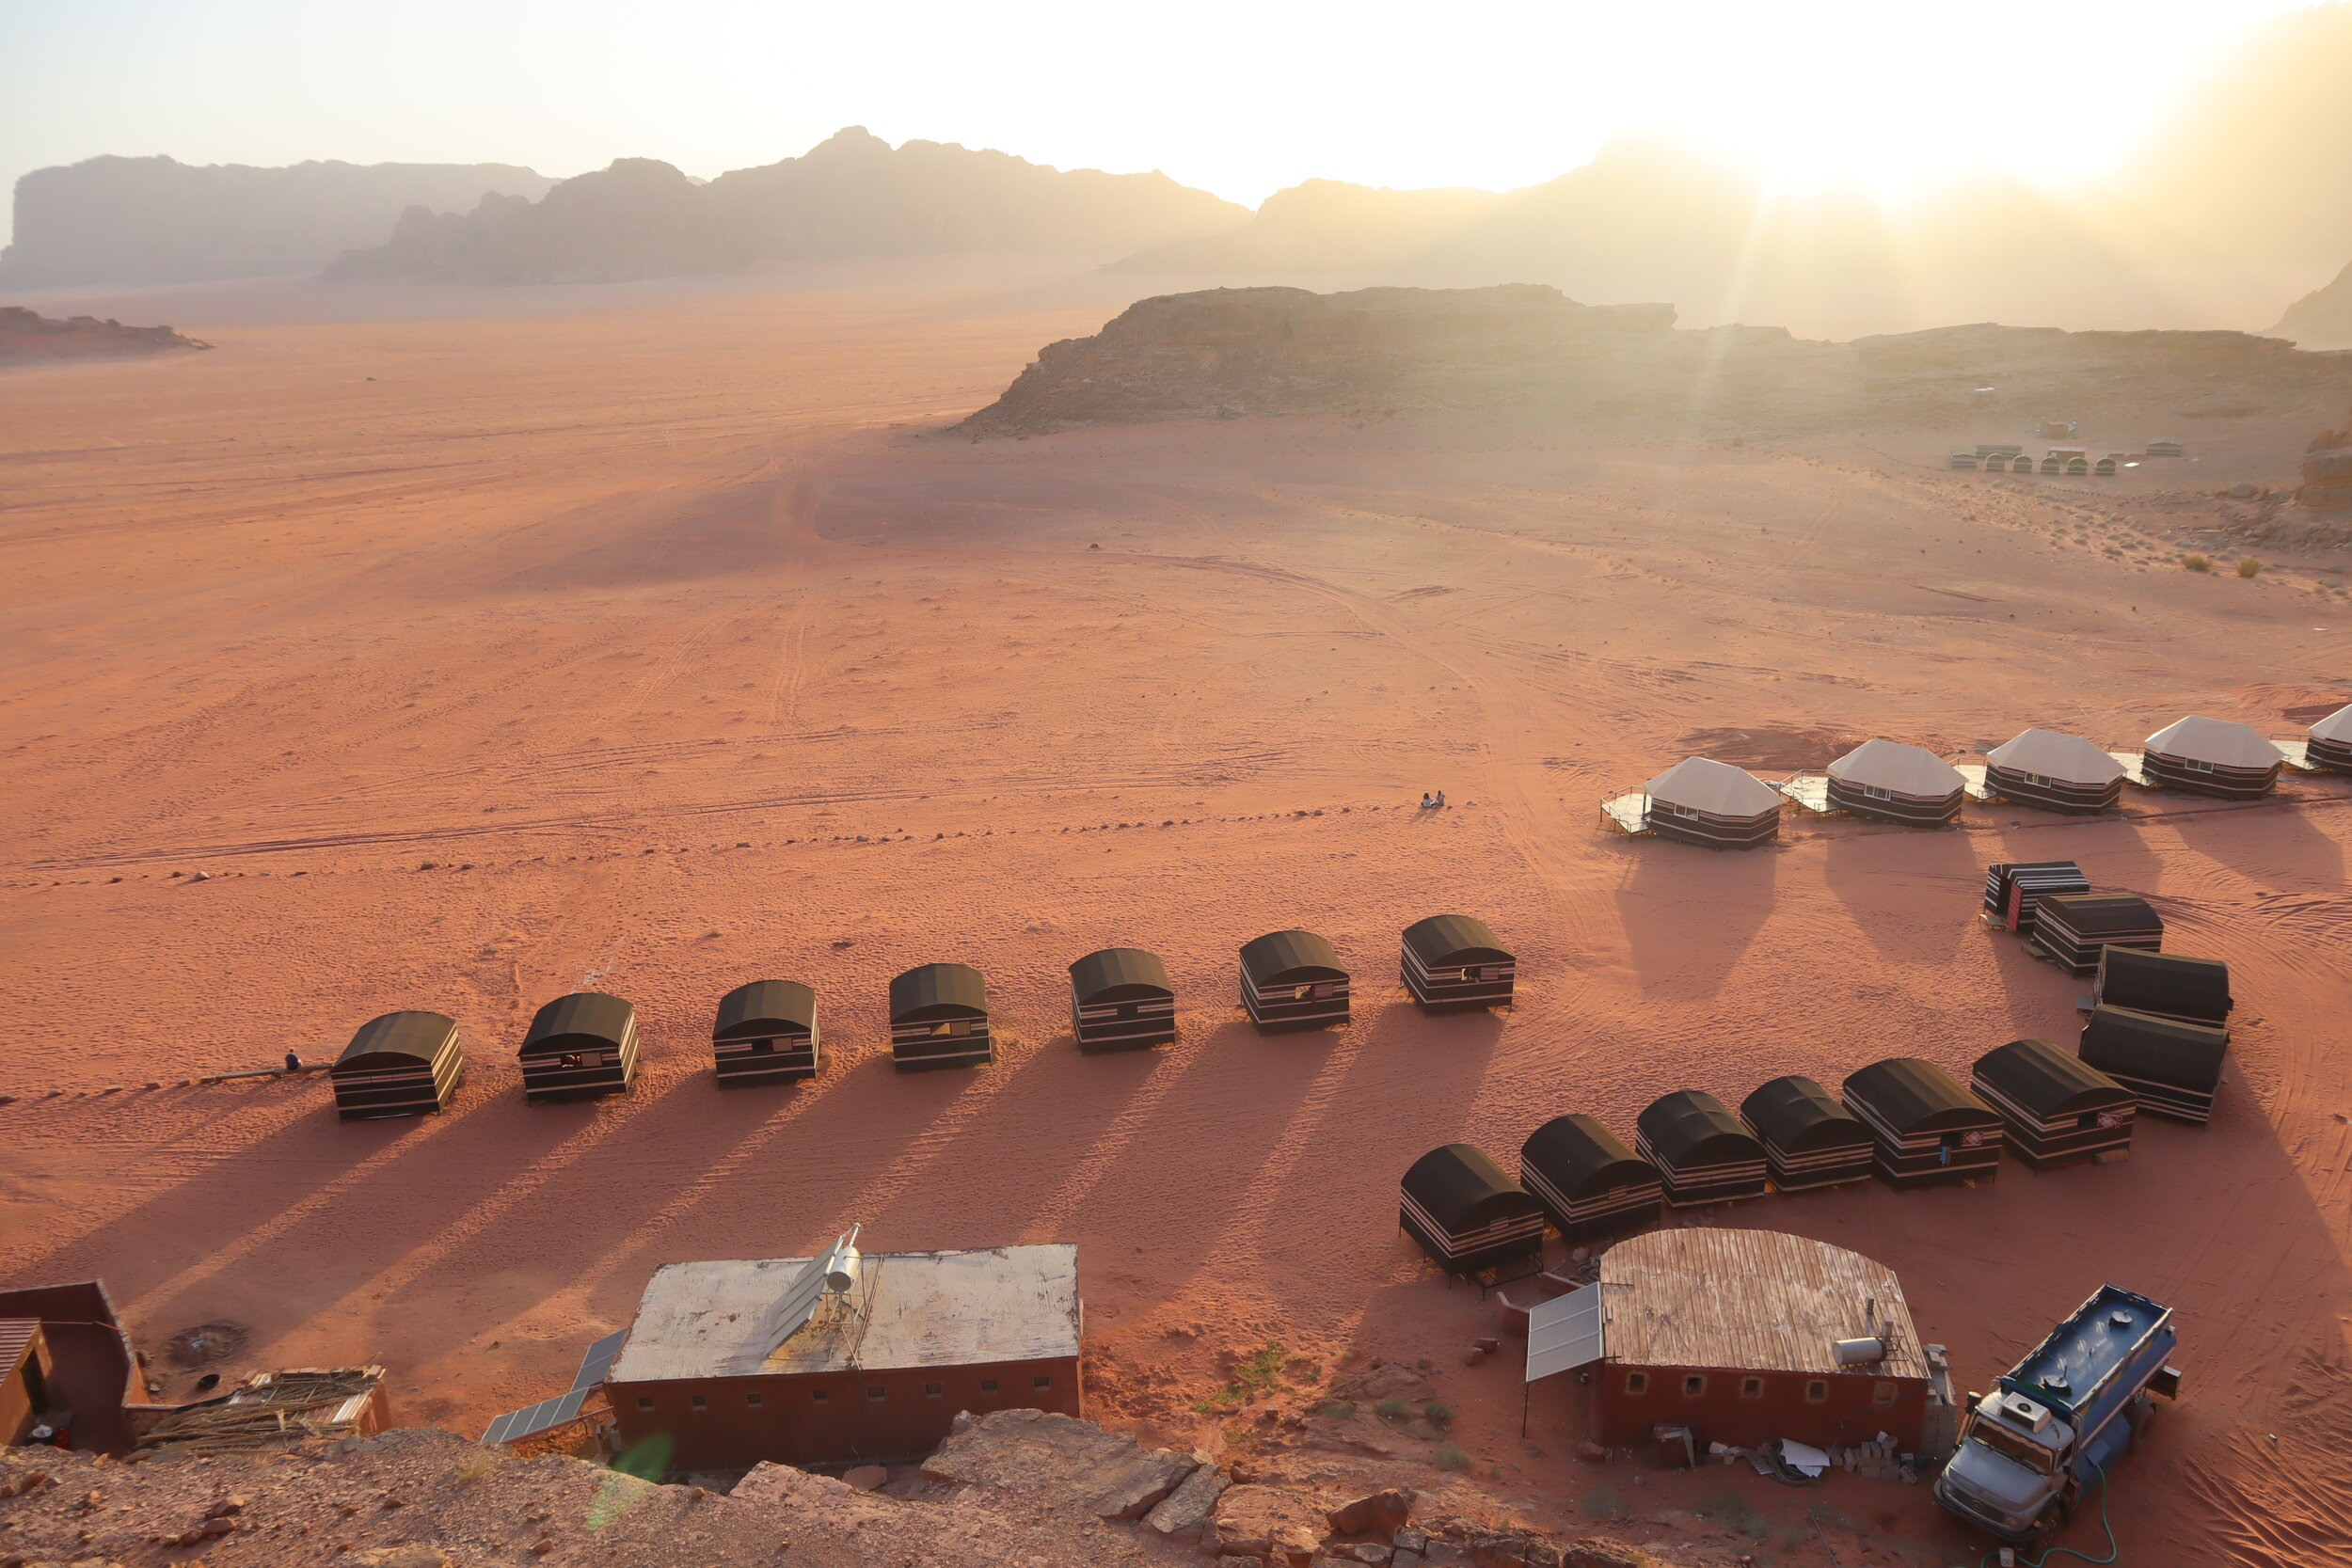 Wadi Rum Bedouin Camp sunset view